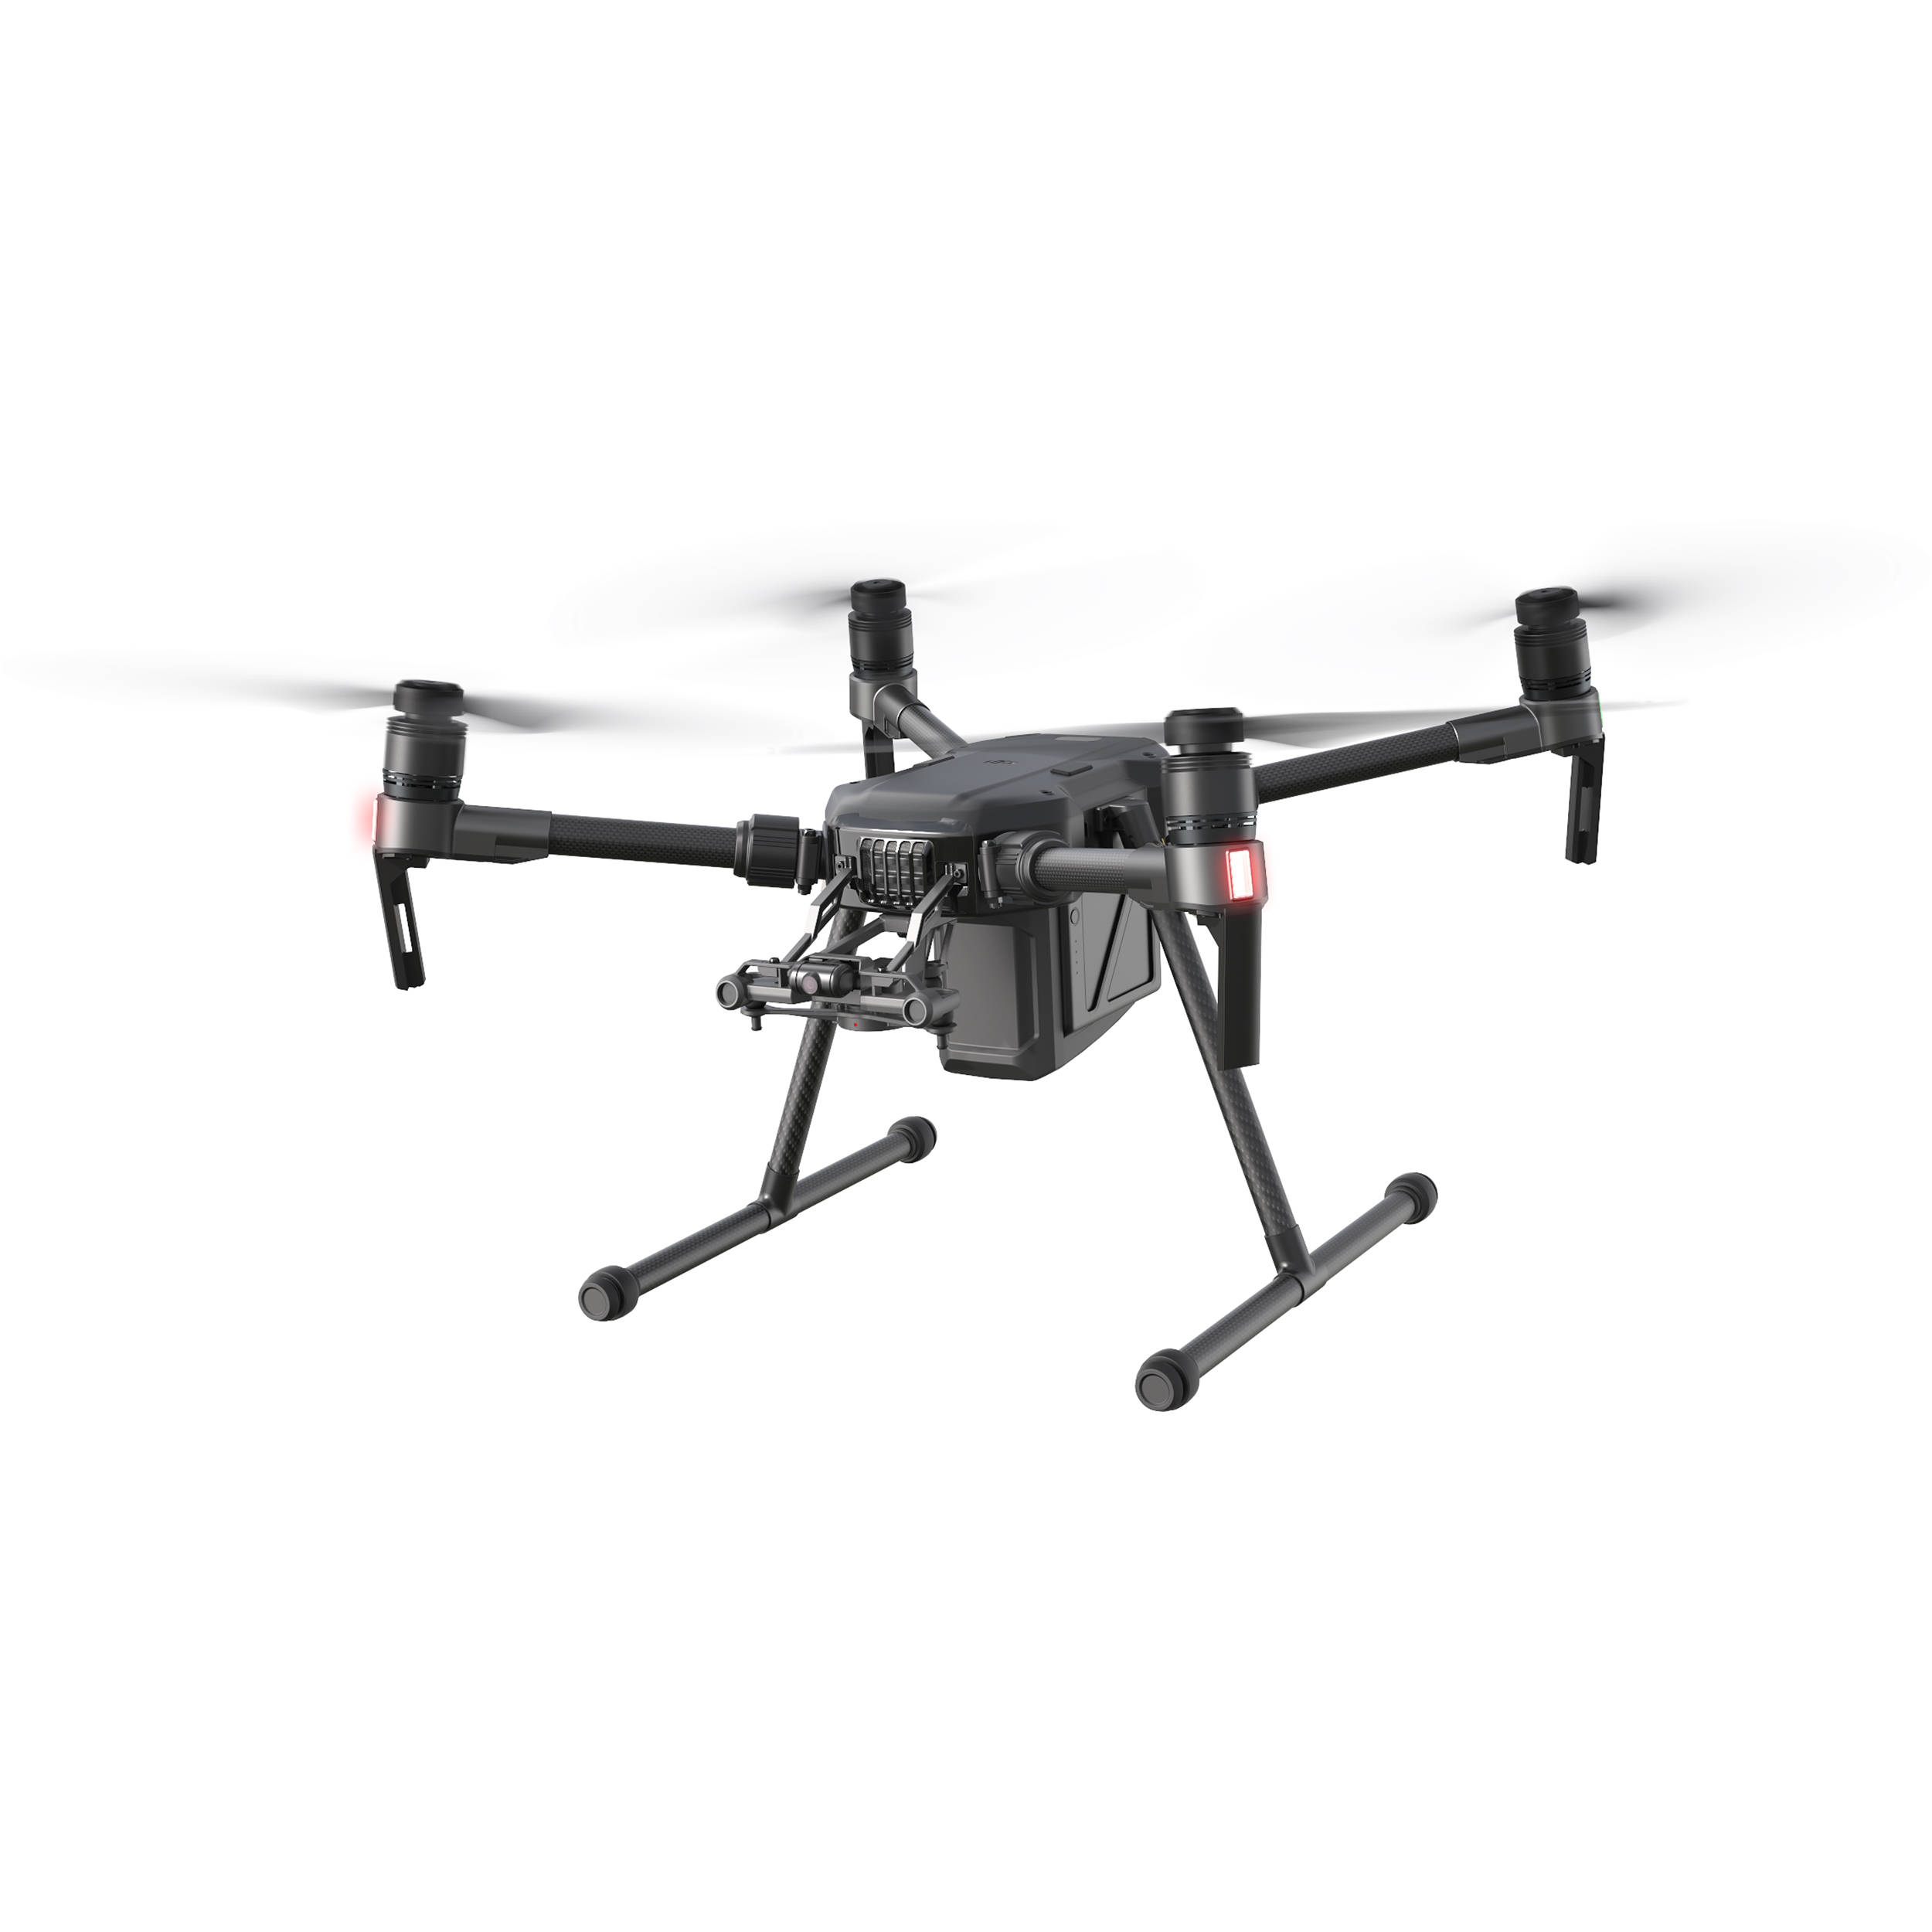 DJI Matrice 210 Professional Quadcopter CPHY000049 BampH Photo